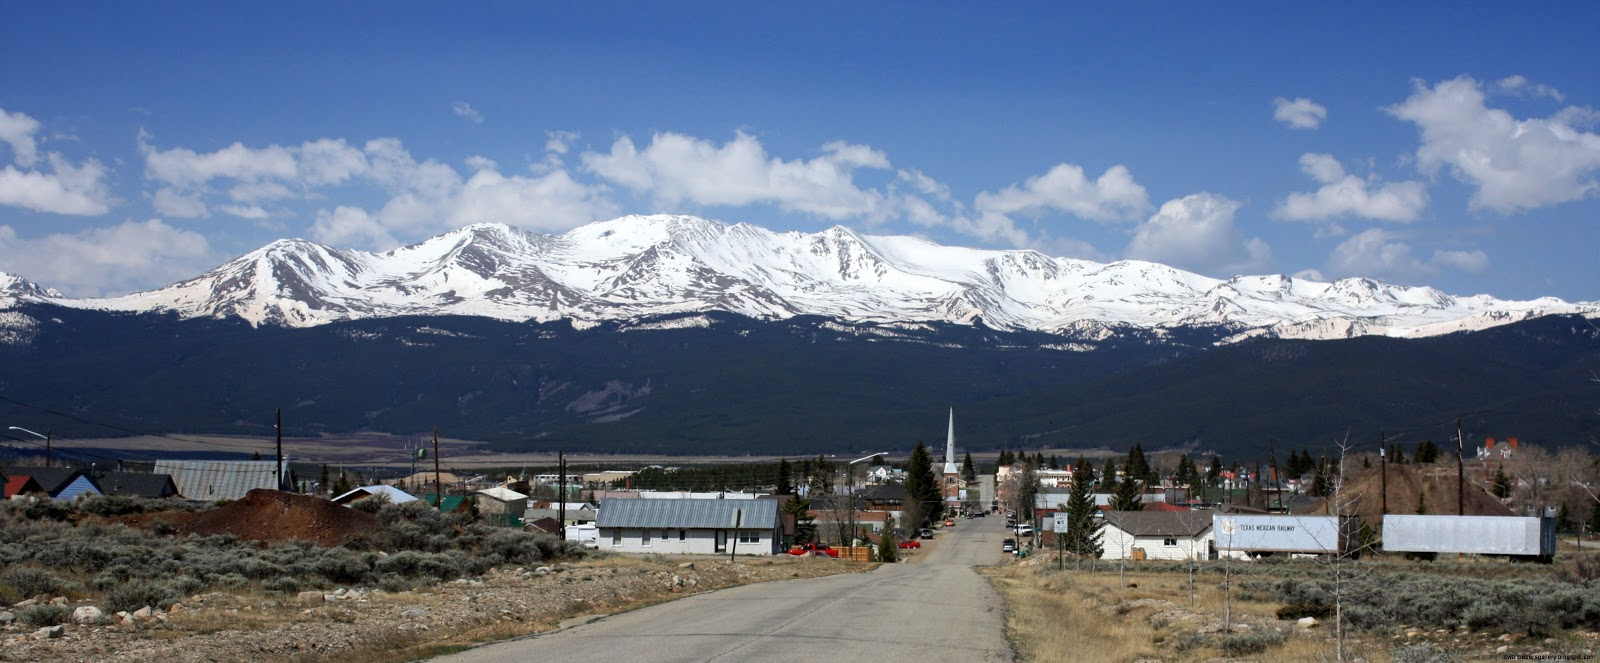 Mount Massive Leadville Colorado